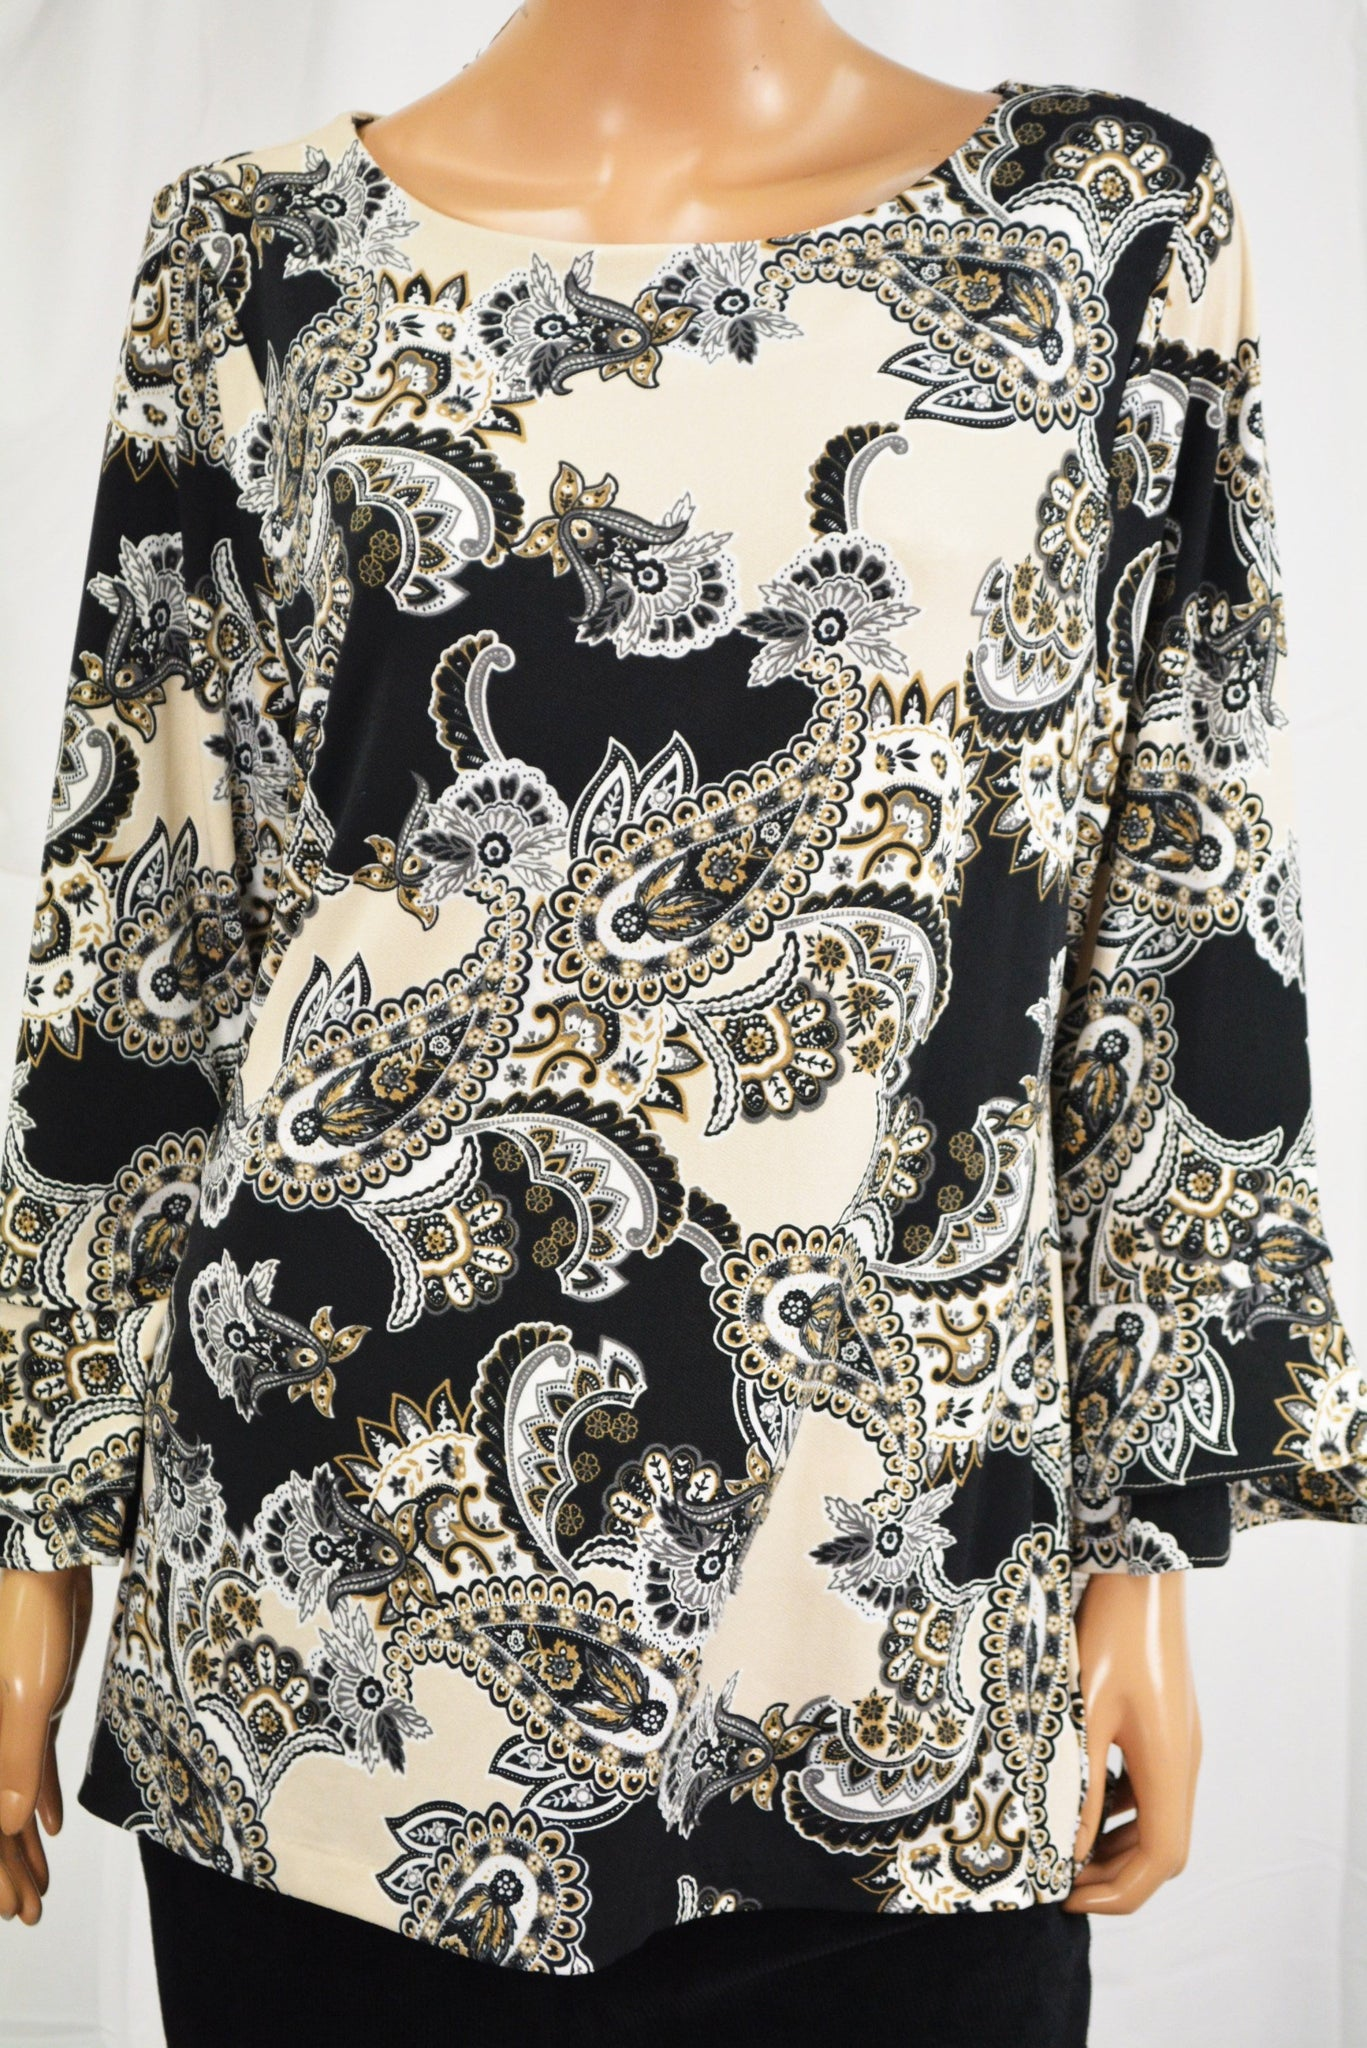 Charter Club Women's Beige Paisley-Print Ruffled Blouse Top X-Large XL